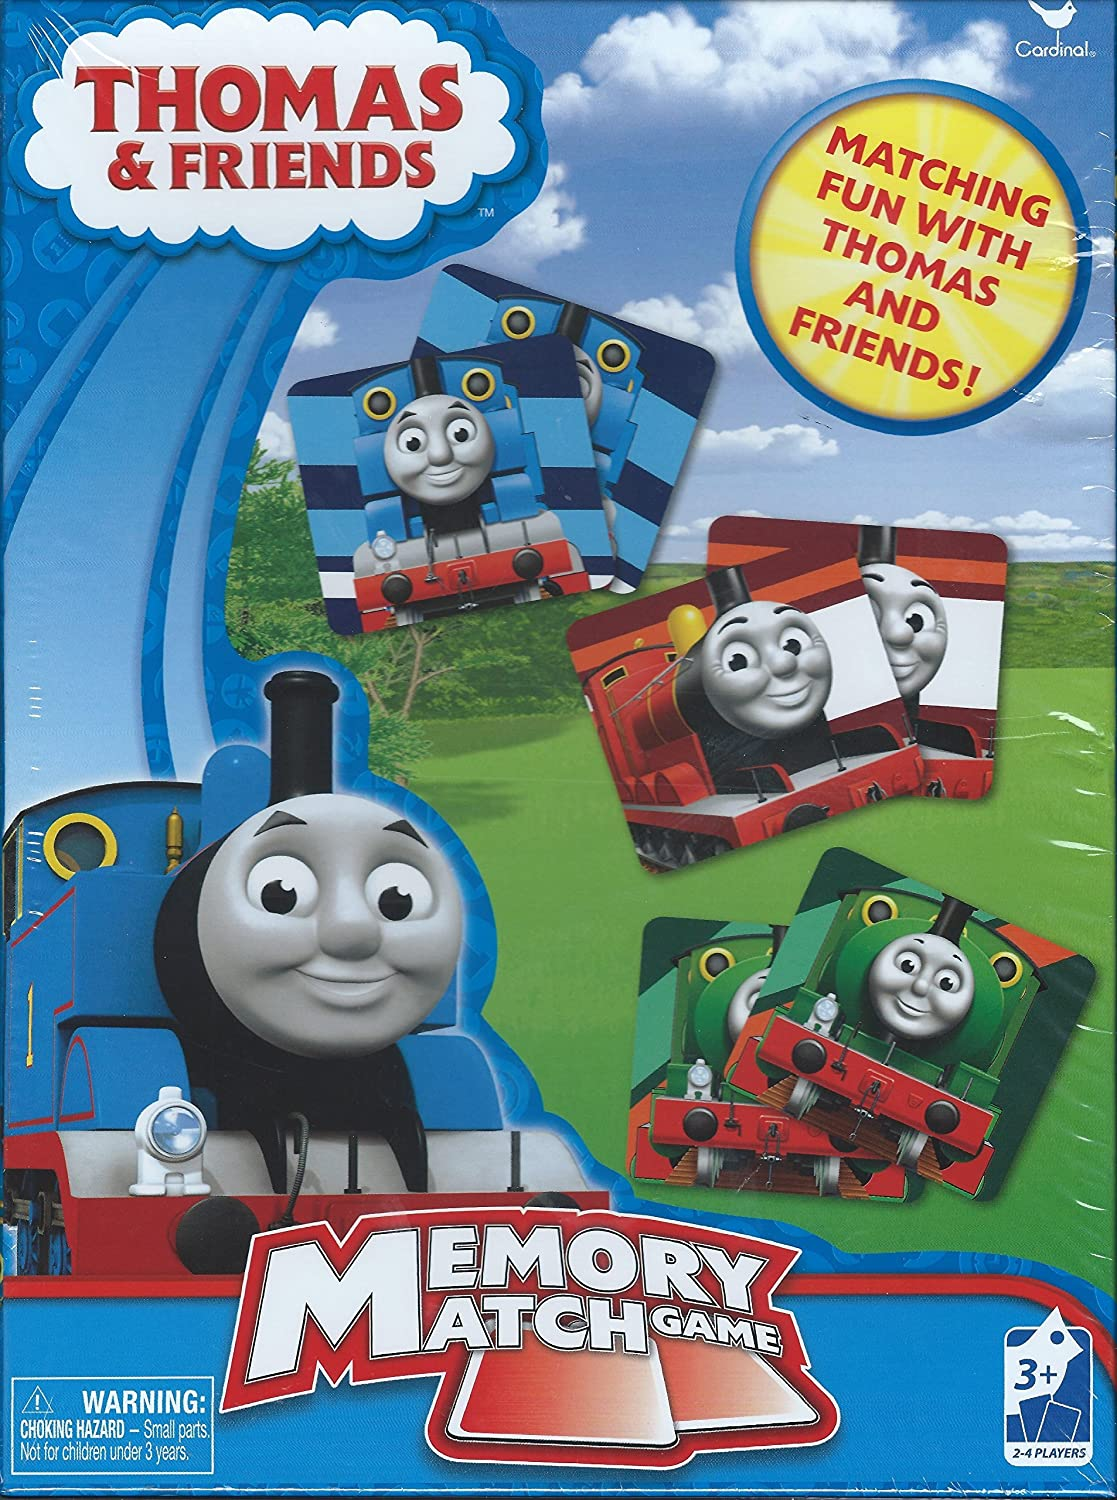 Amazon.com: Thomas and Friends Memory Match Card Game: Toys & Games